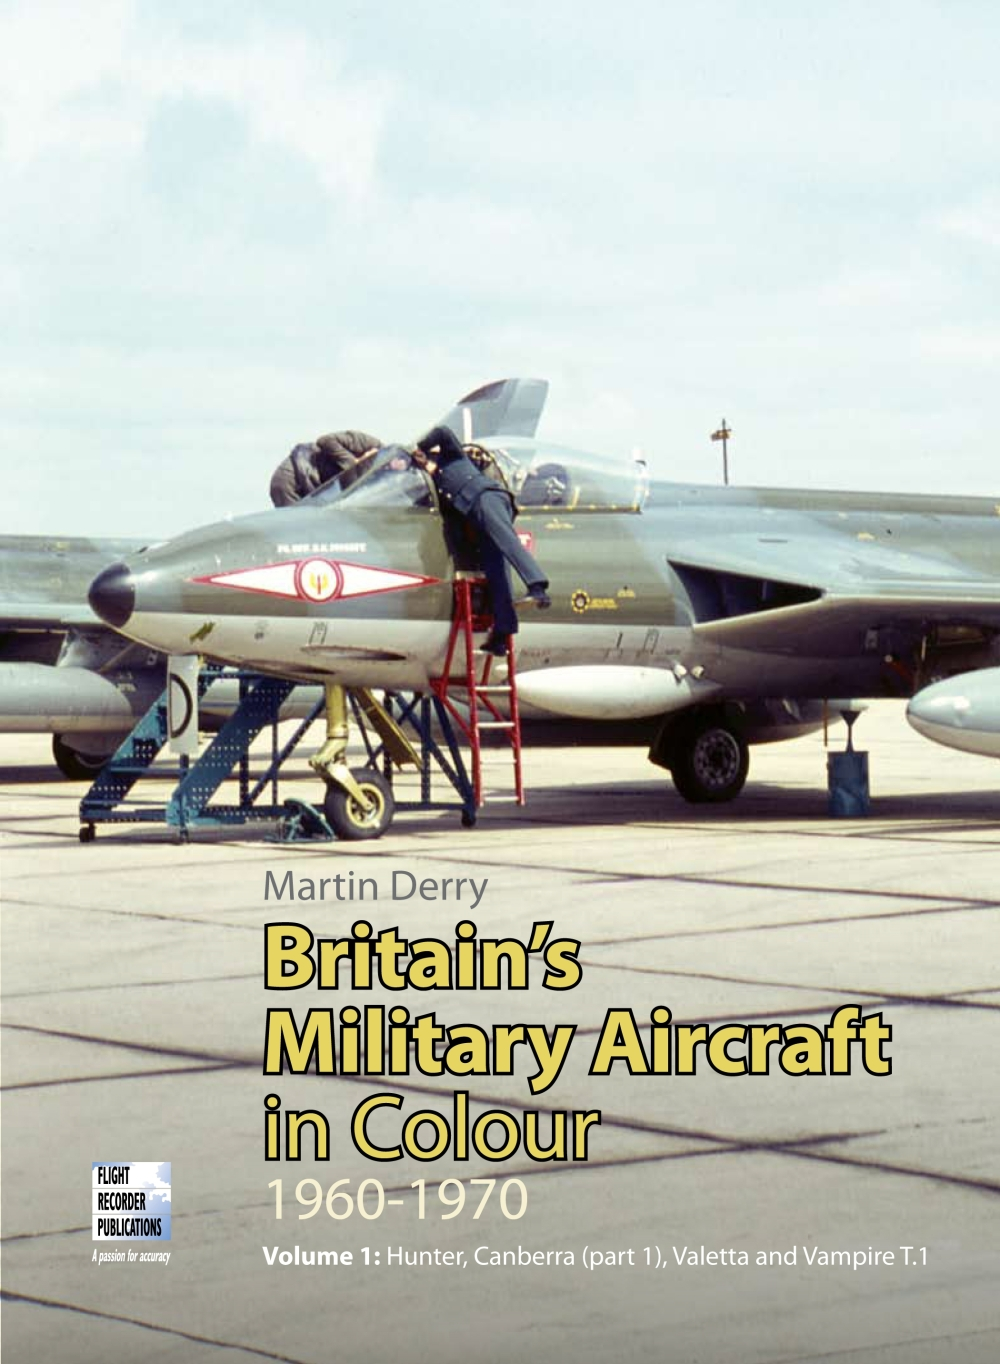 British Military Aircraft in Colour 1960-1970